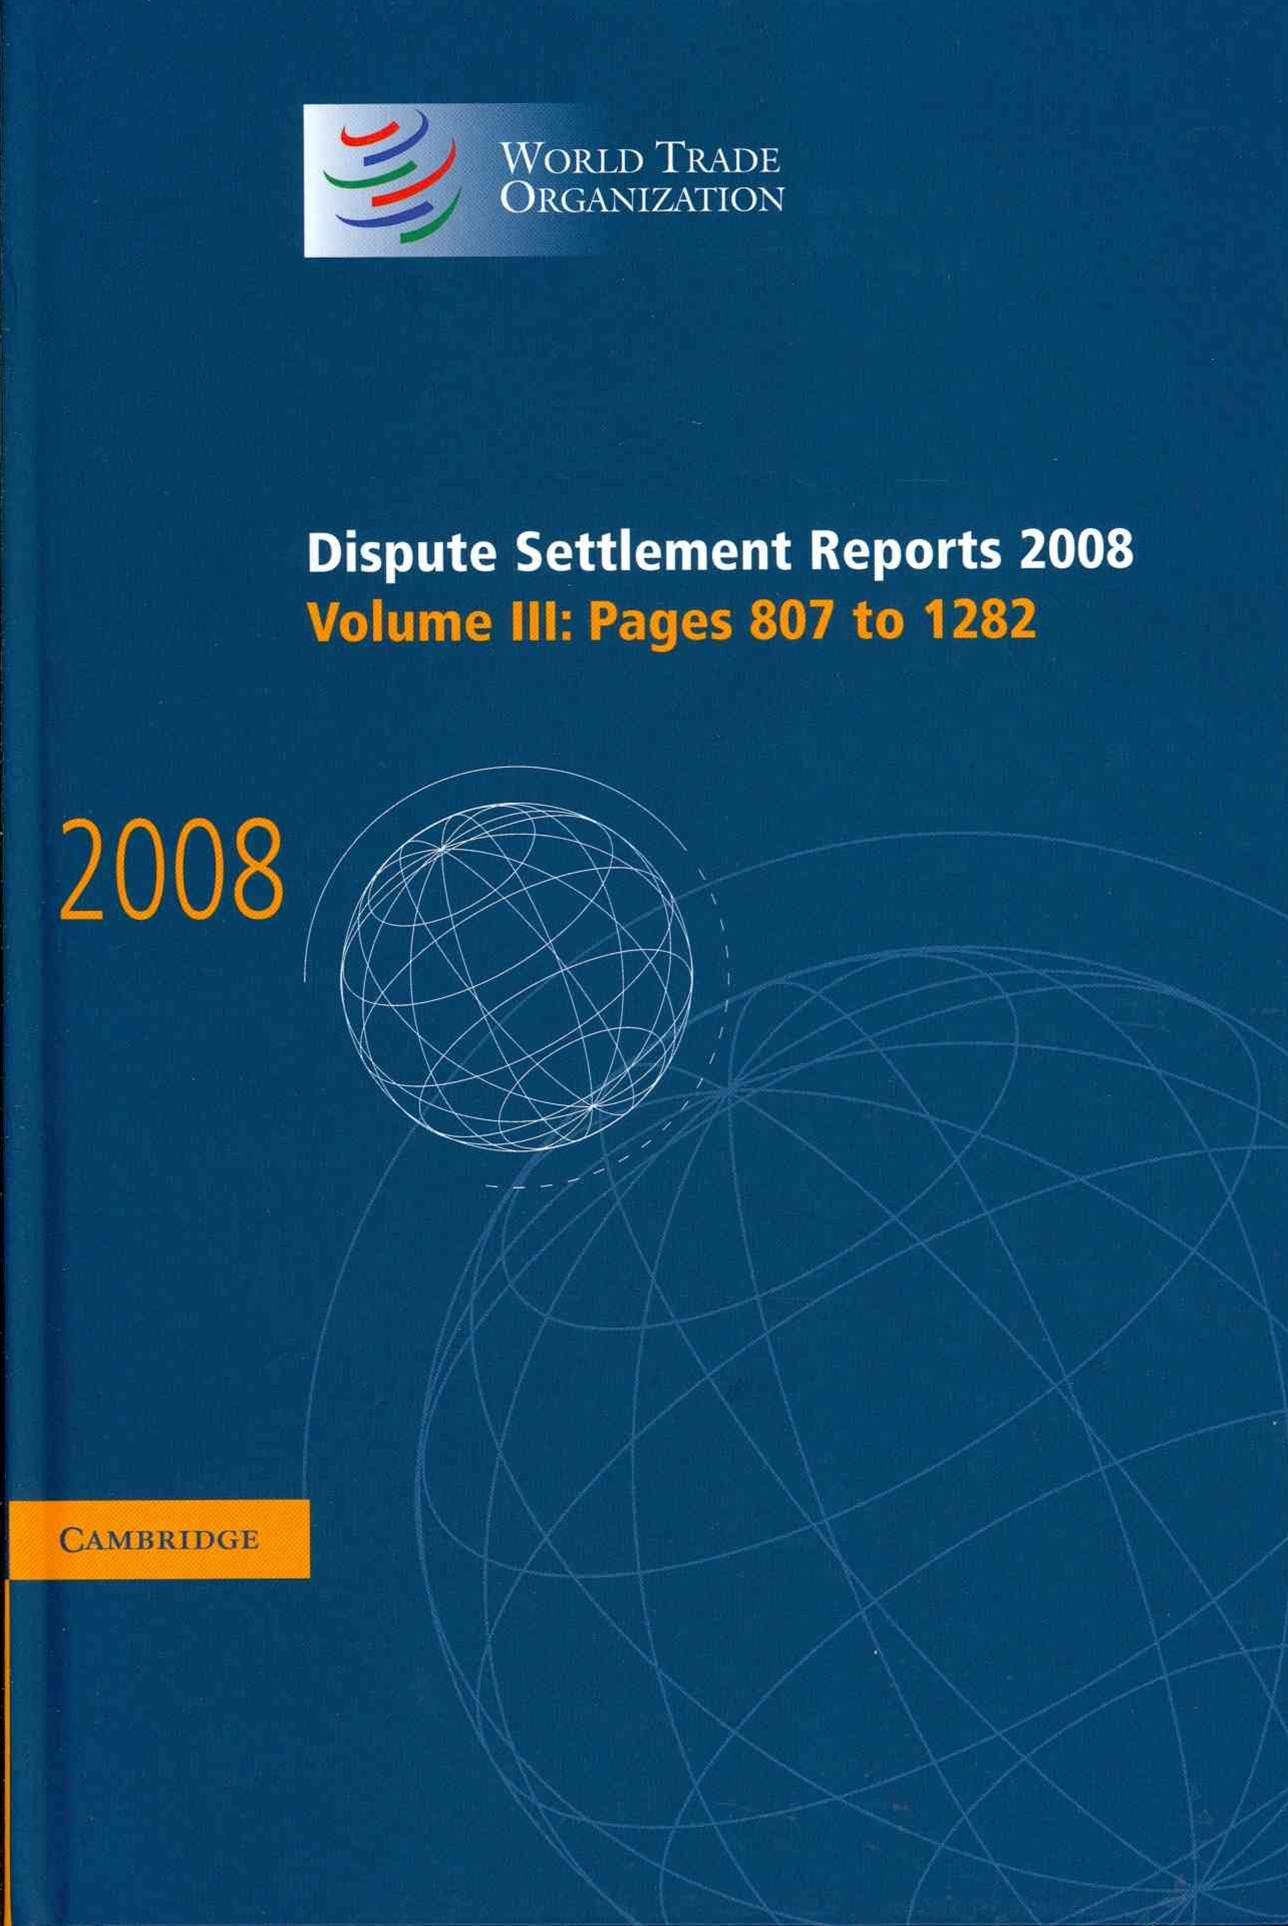 Dispute Settlement Reports 2008: Volume 3, Pages 807-1282